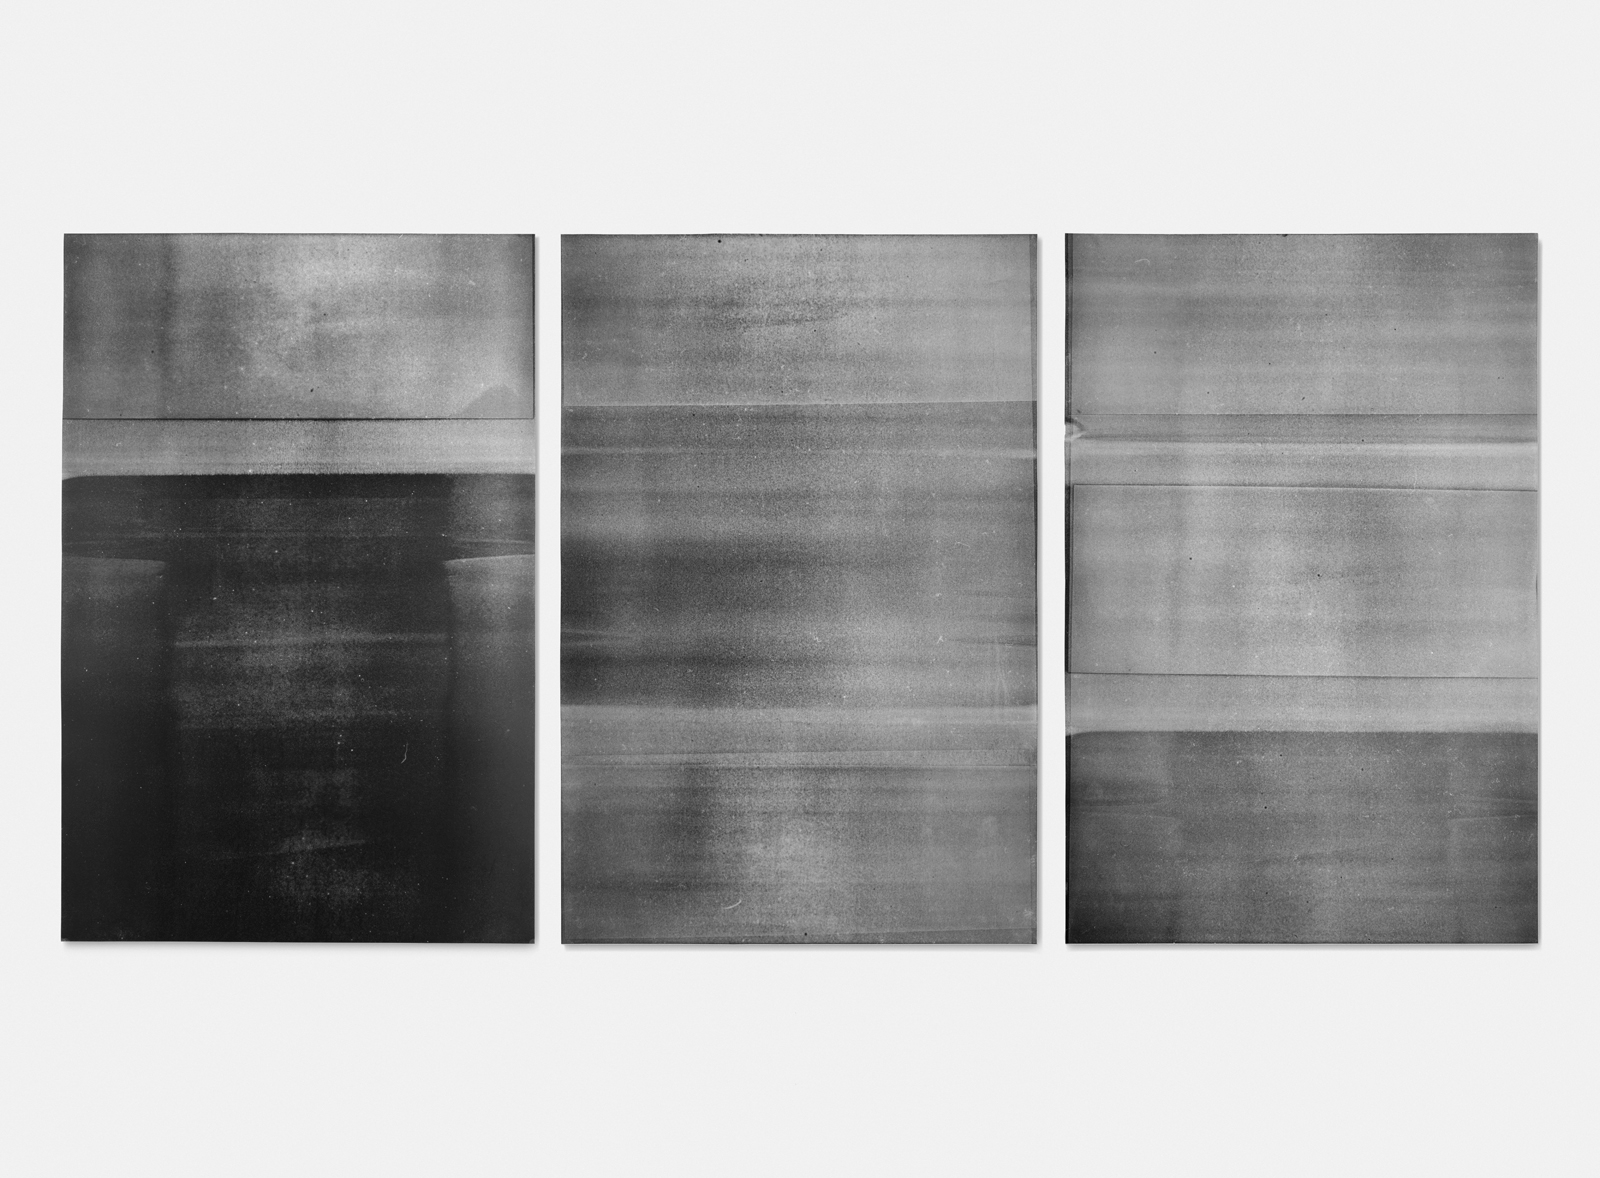 Untitled (mylar #1, #2, and #3, from the ongoing series reflected/repeated)  2014, oil based ink painted onto mylar 24 x 36 inches each